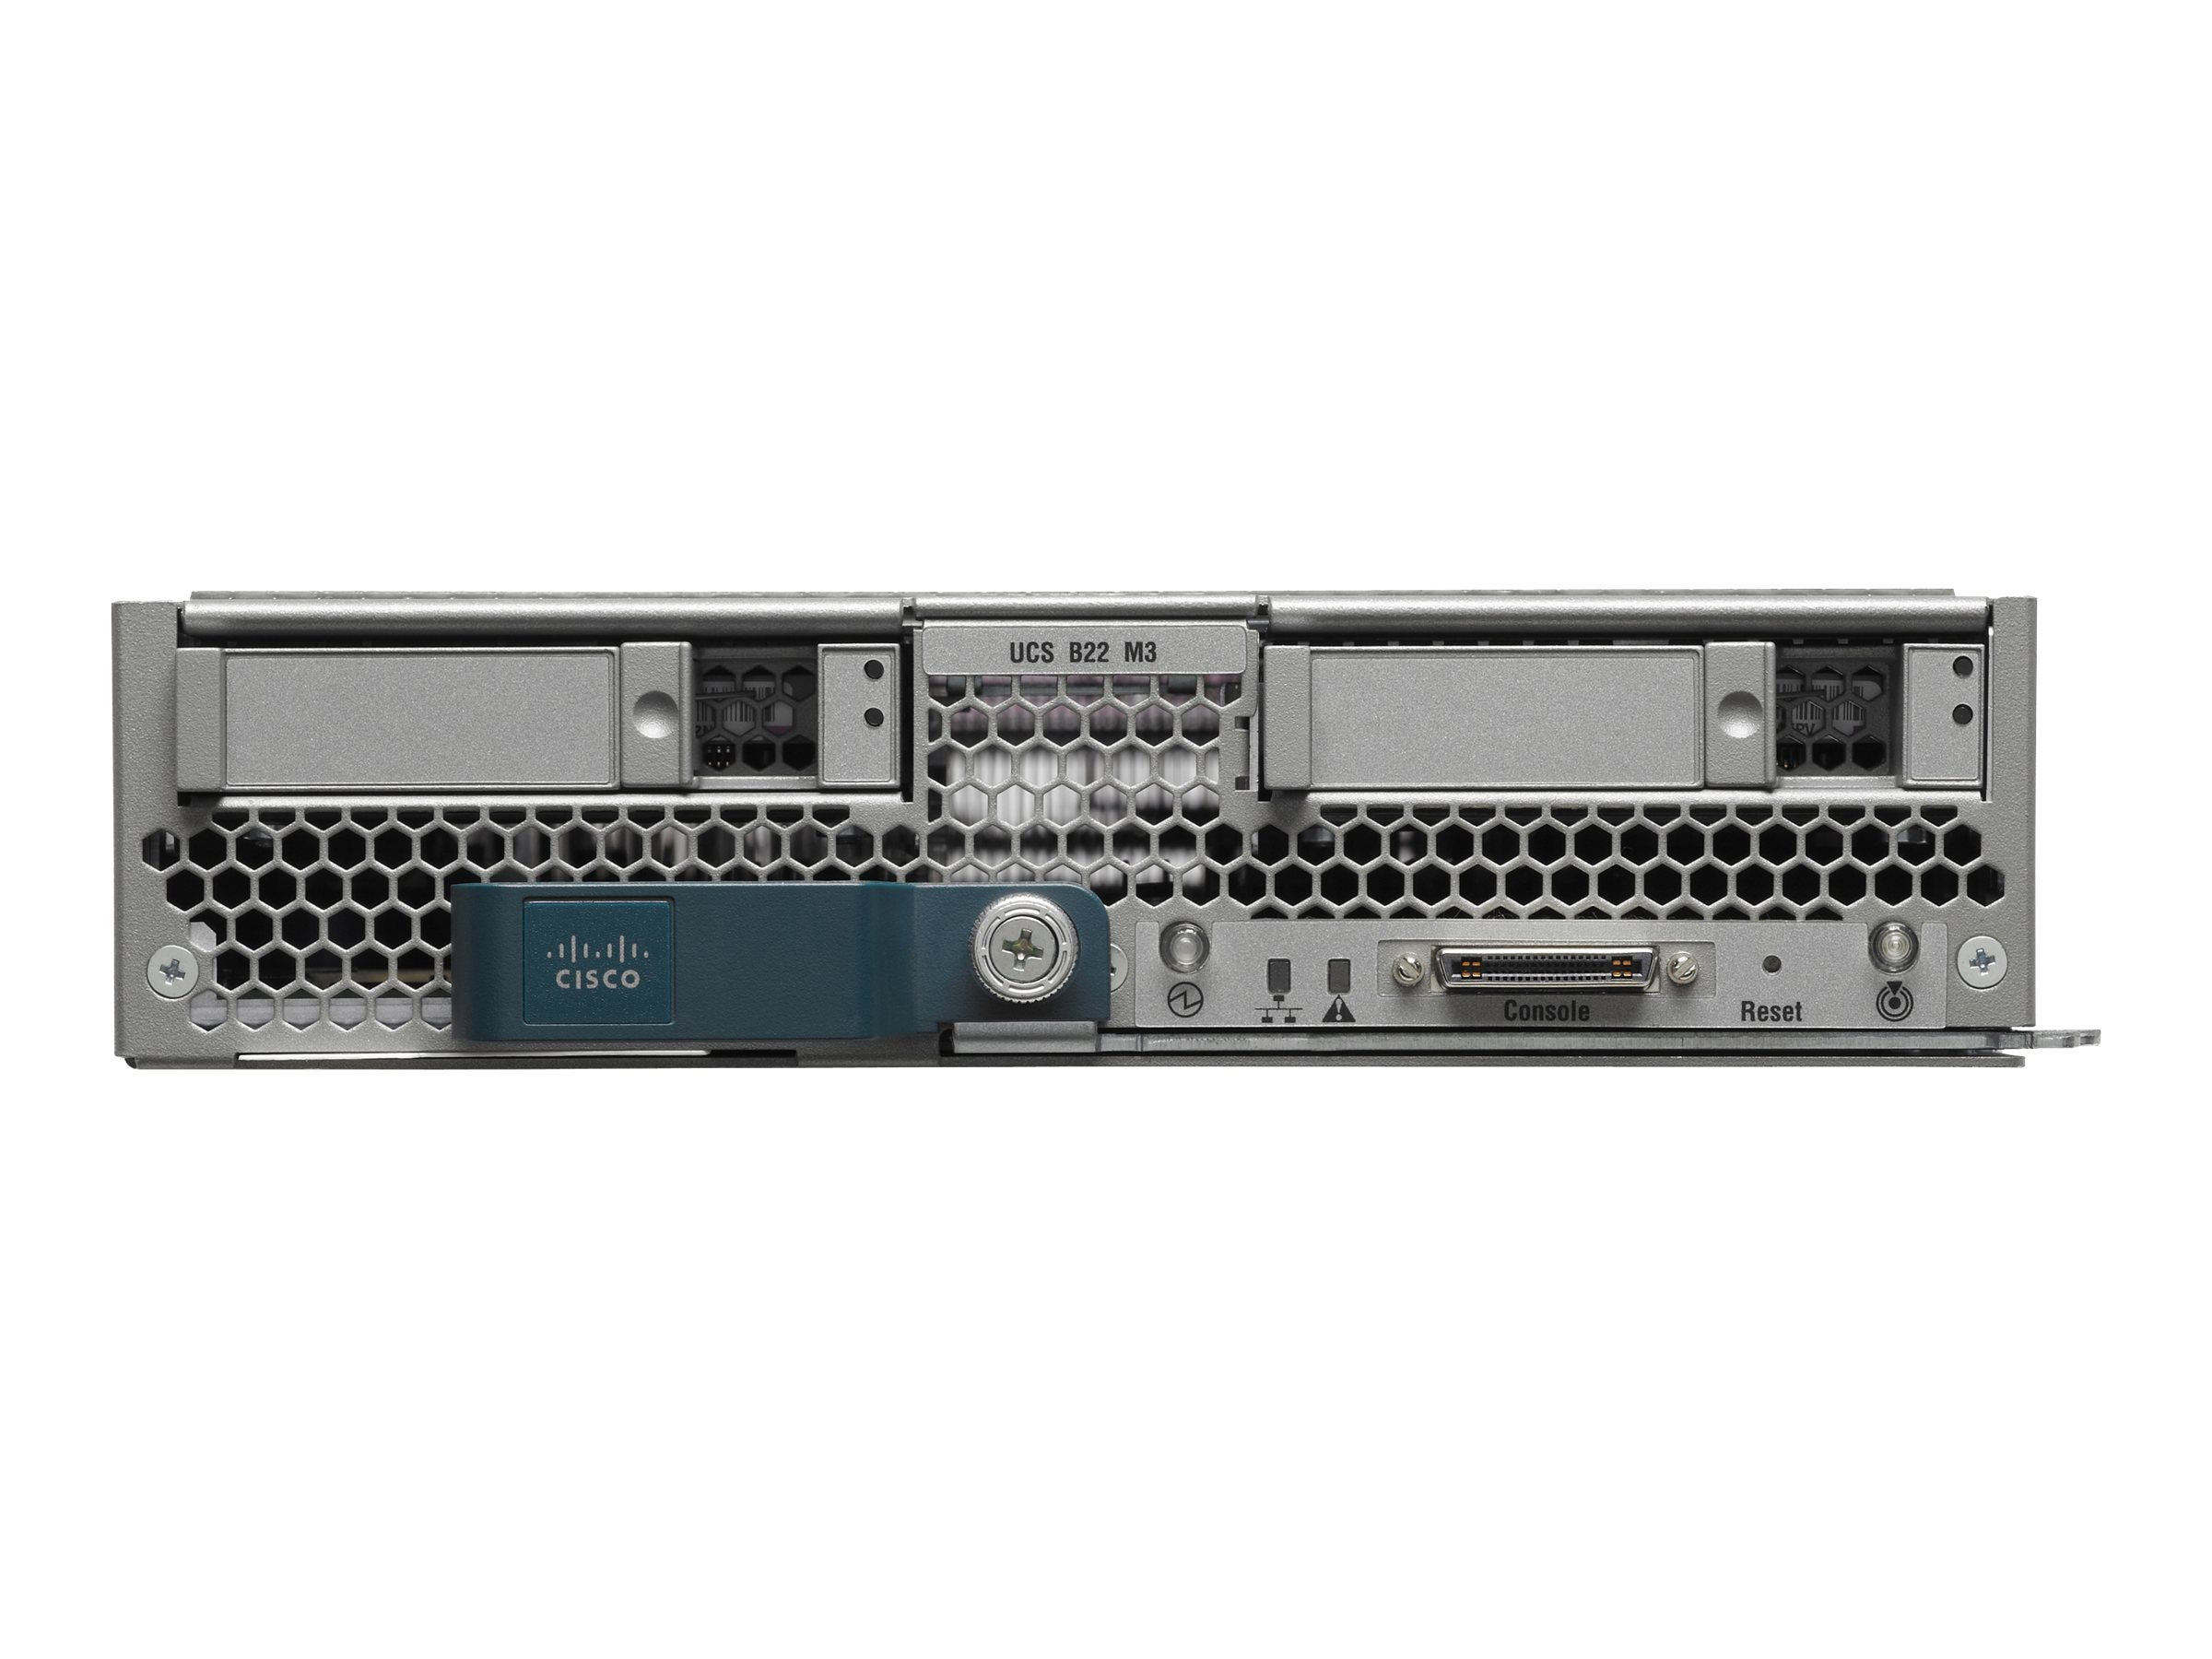 Cisco UCS B200 SmartPlay Value Plus Expansion Pack (2x) Xeon E5-2665 2.4GHz 128GB 2x2.5 HS Bays 10GbE